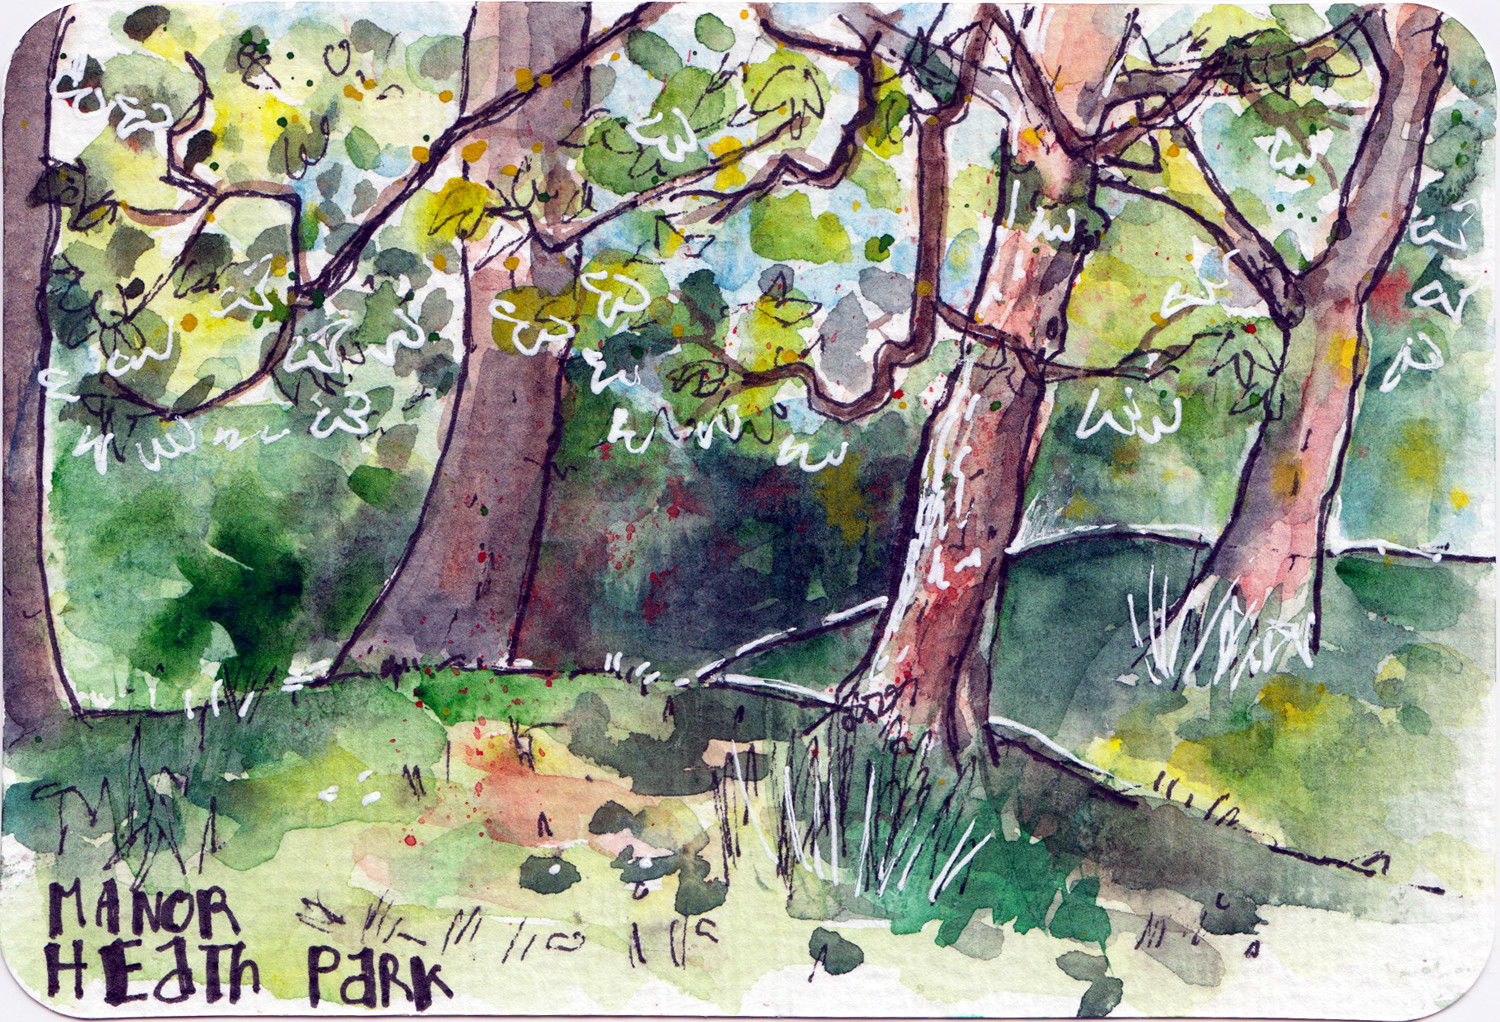 Trees in Spring watercolour and pen sketch on postcard by Sophie Peanut